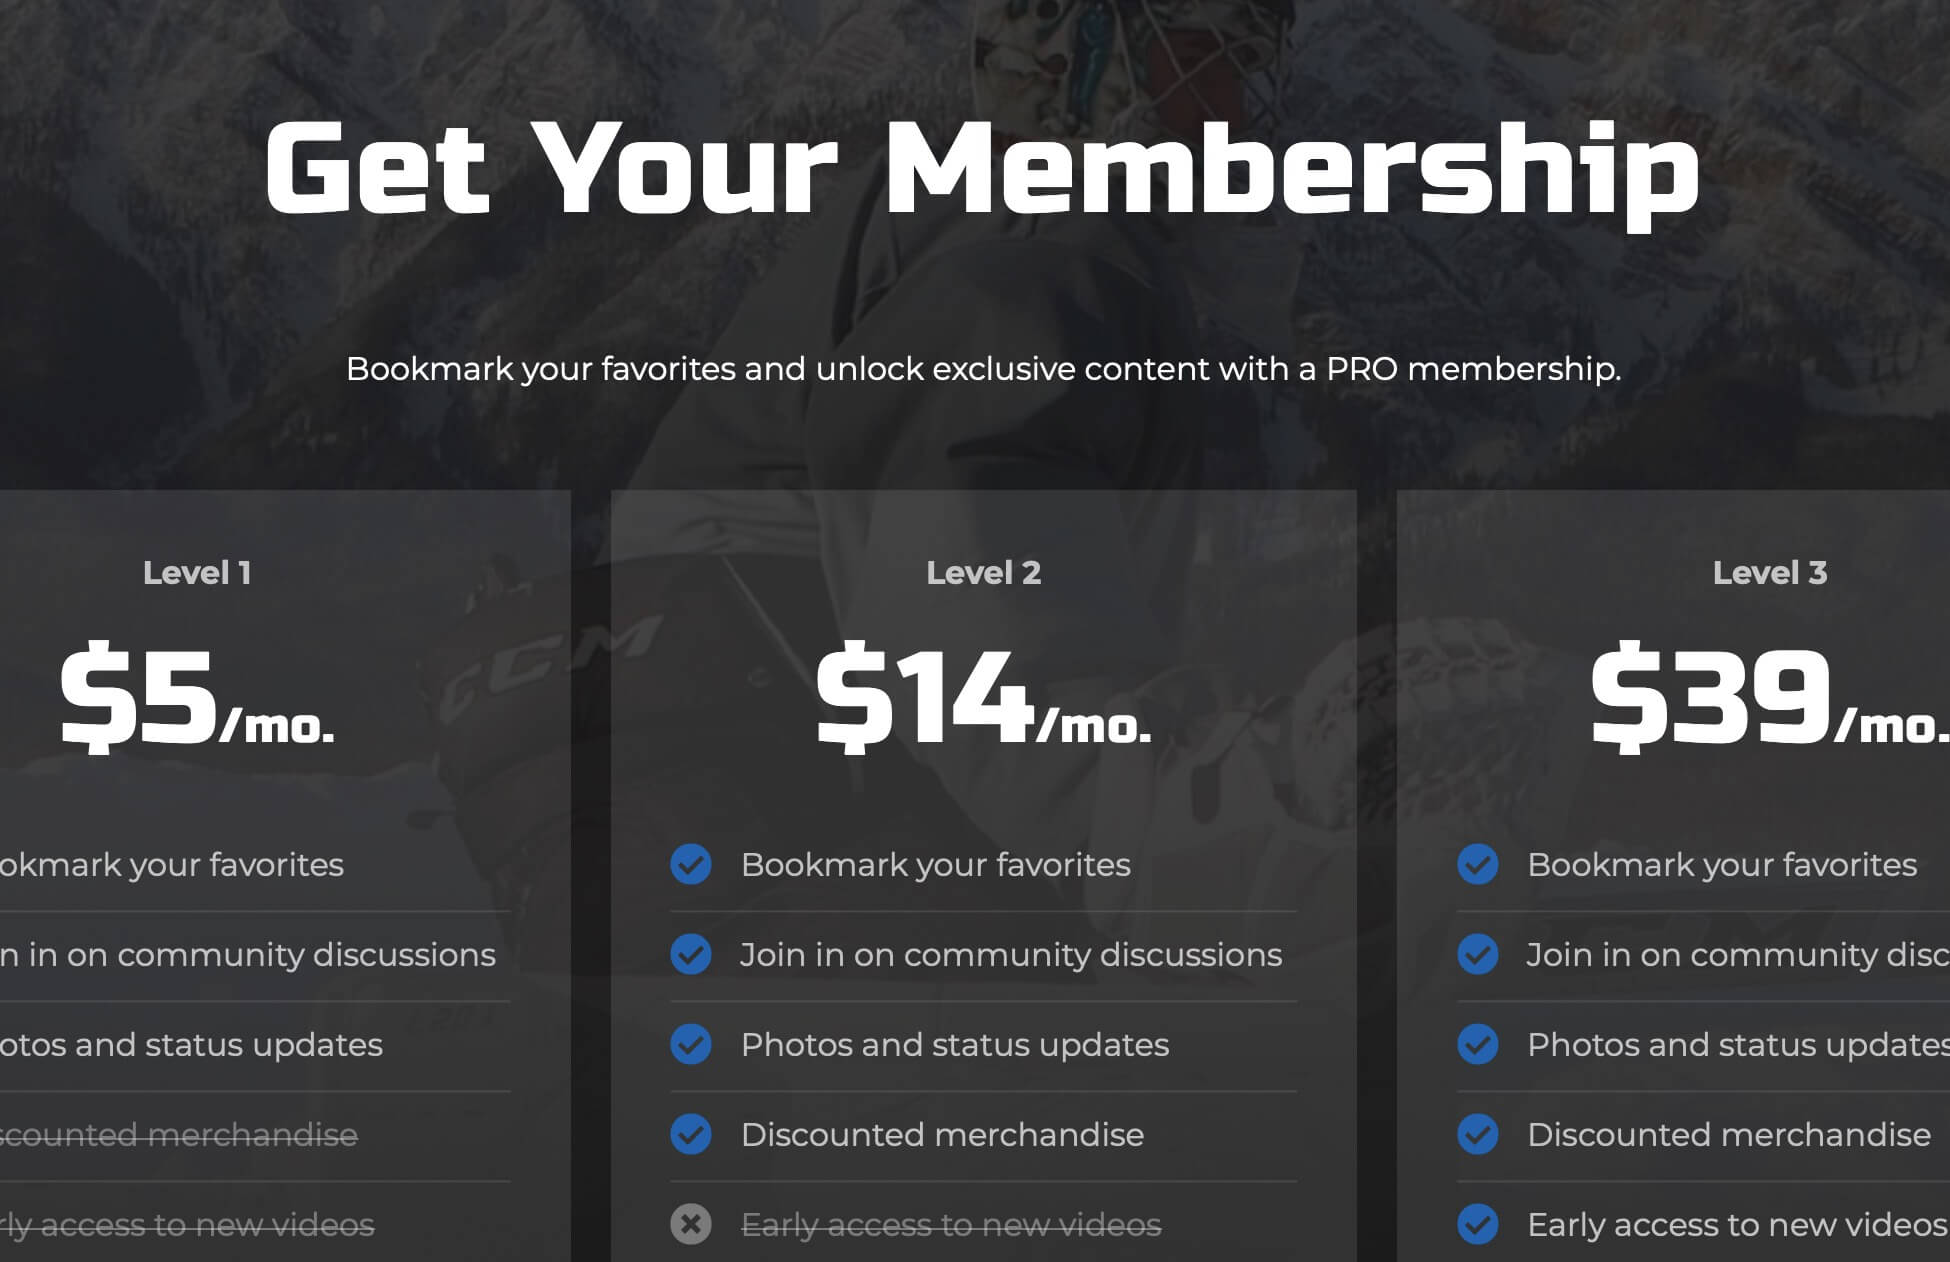 Get Paid by Your Biggest Fans Through Built-in Memberships